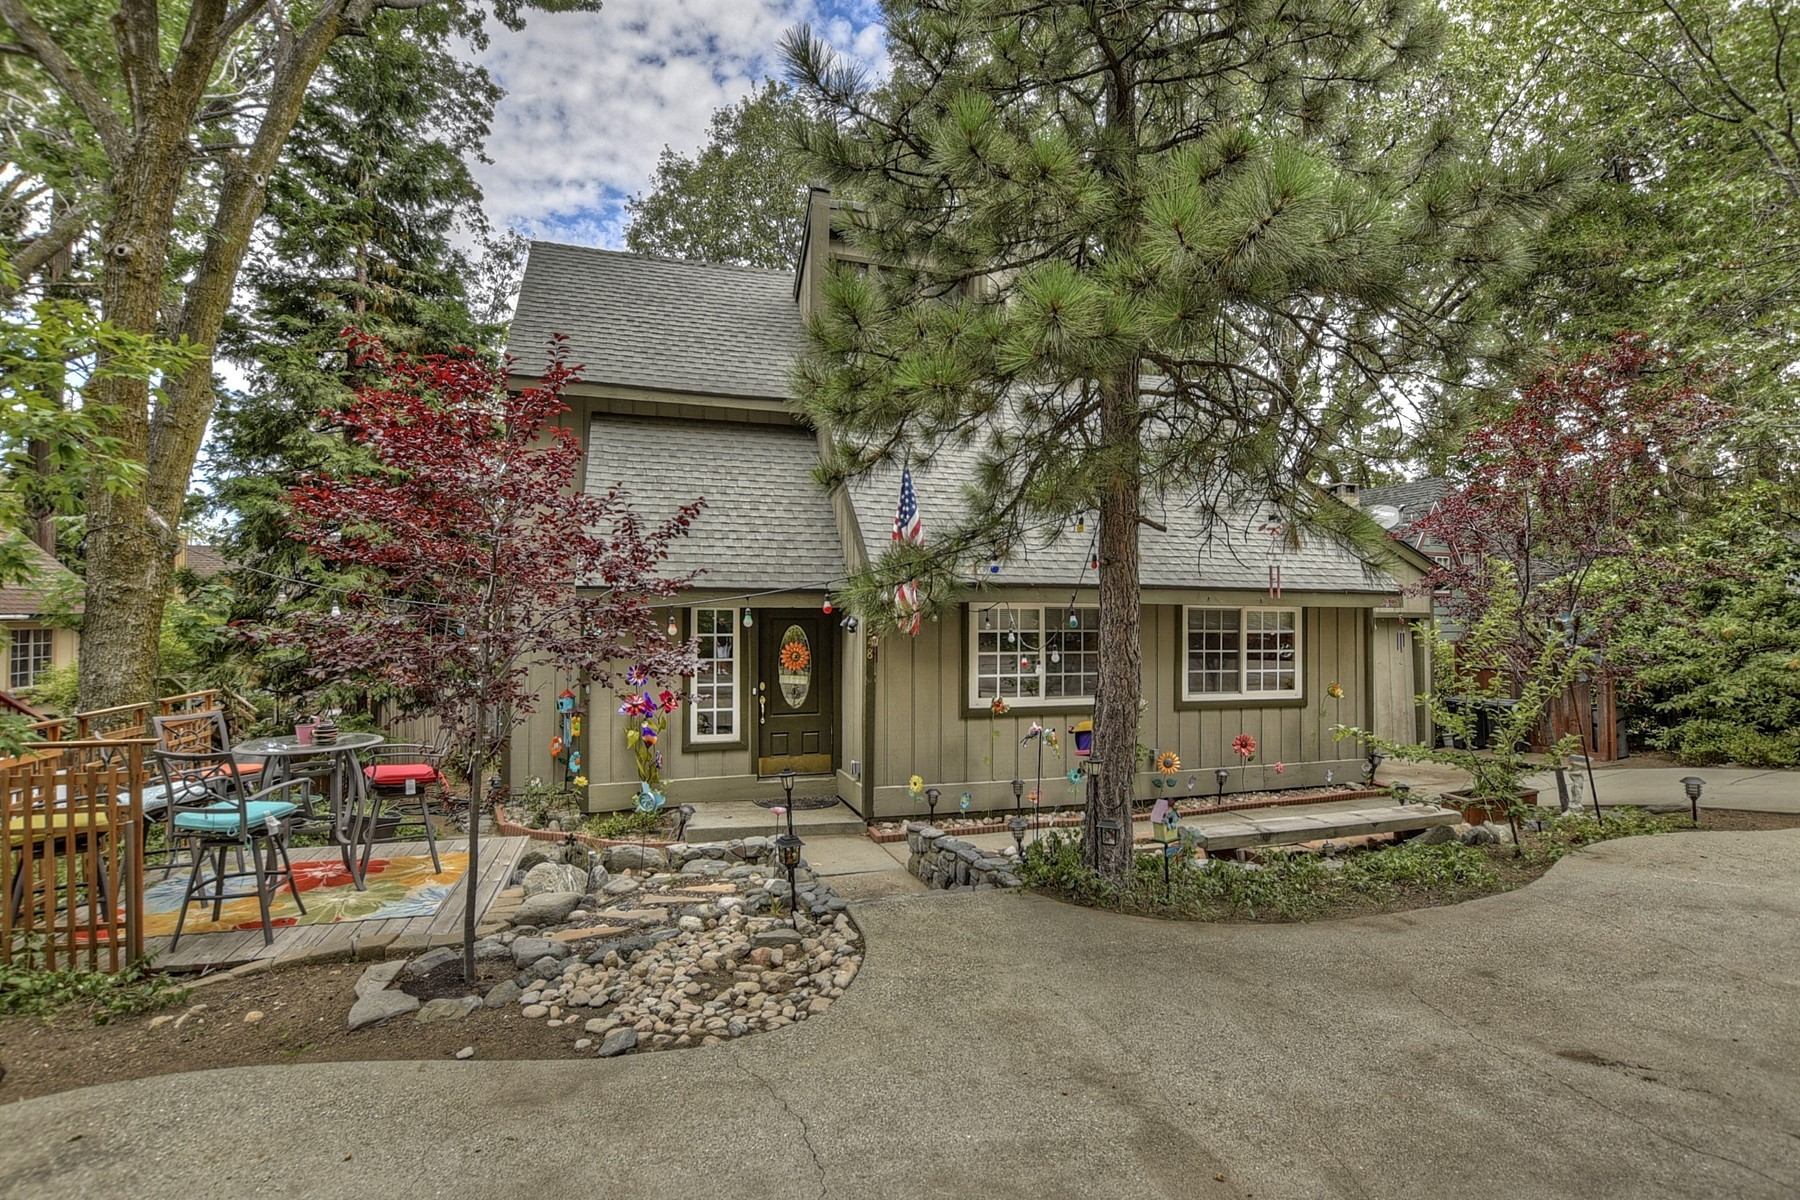 Single Family Homes for Sale at Arrowhead, California 248 Hemlock Drive Lake Arrowhead, California 92352 United States